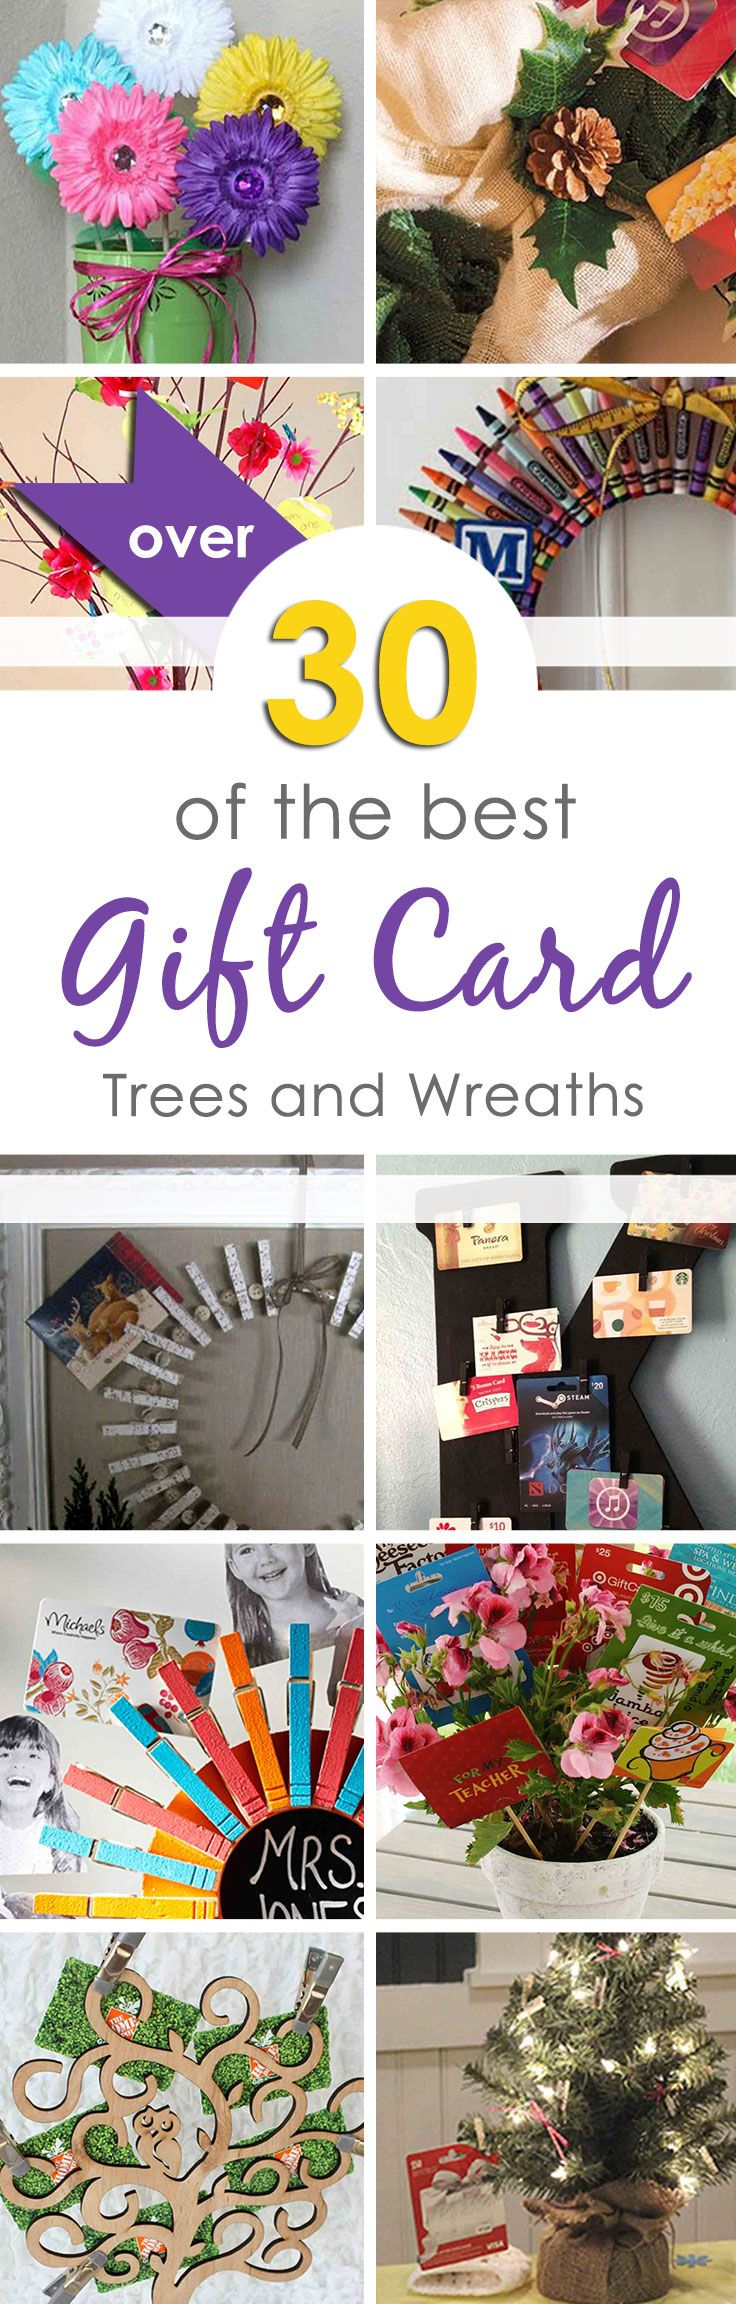 ... gift cards best gifts fun gifts gift card wreath gift card tree ideas